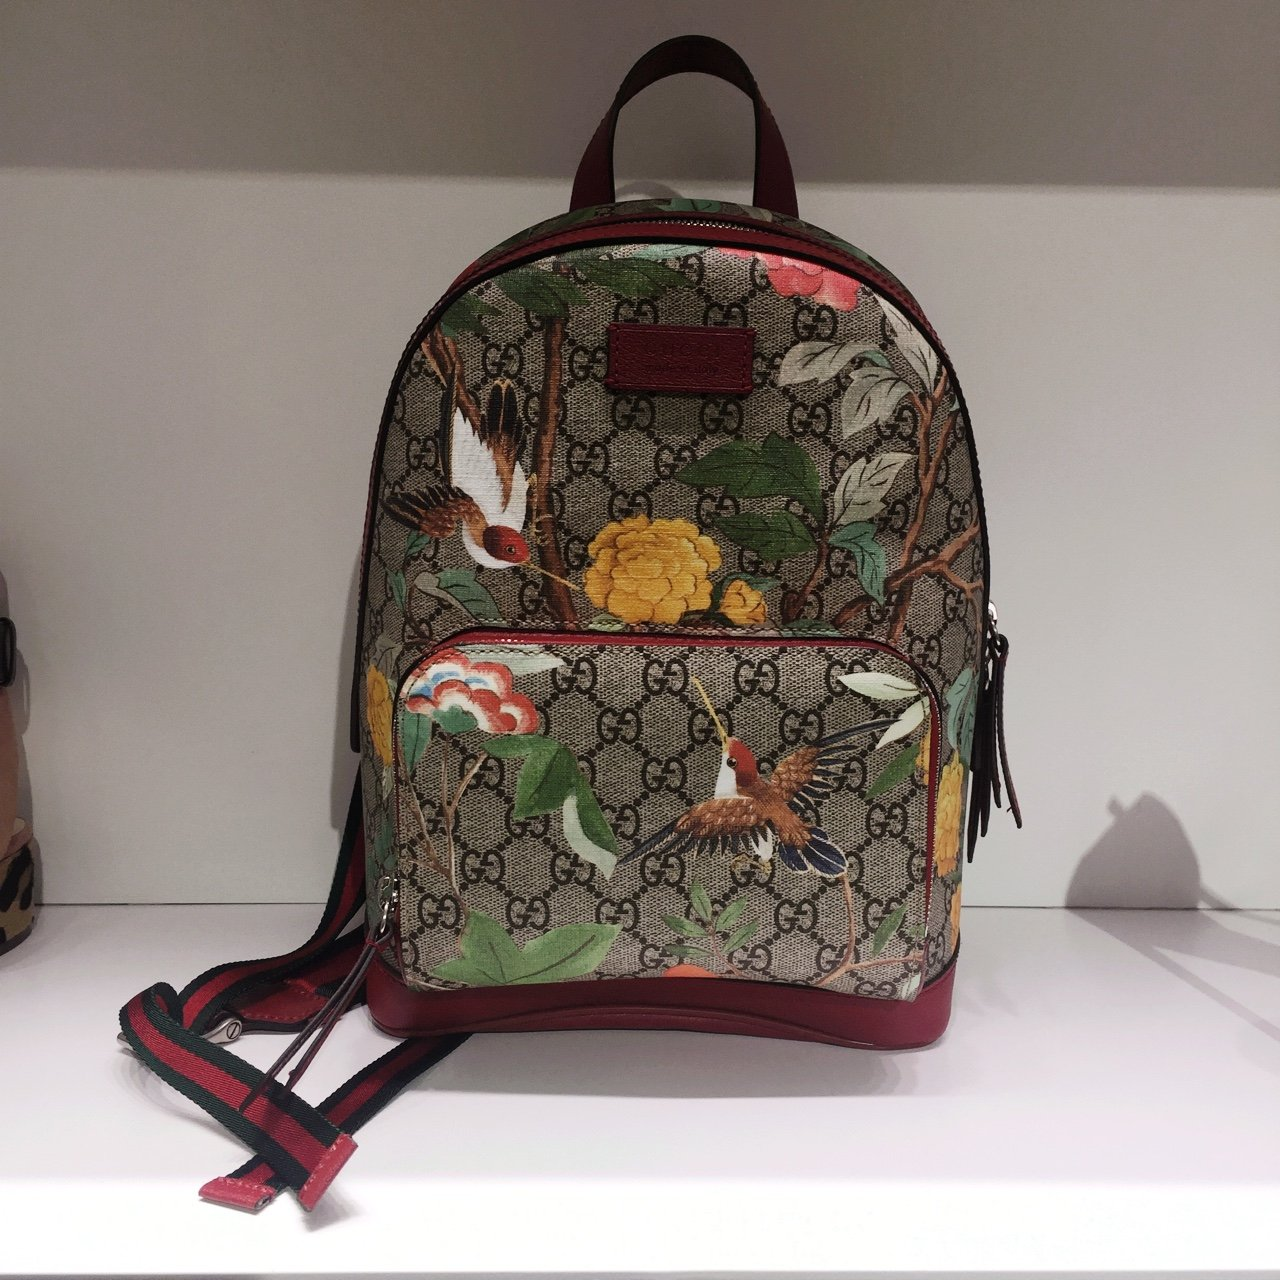 NEW GUCCI BOOMS GG BACKPACK - Depop 731d014a9e2b1